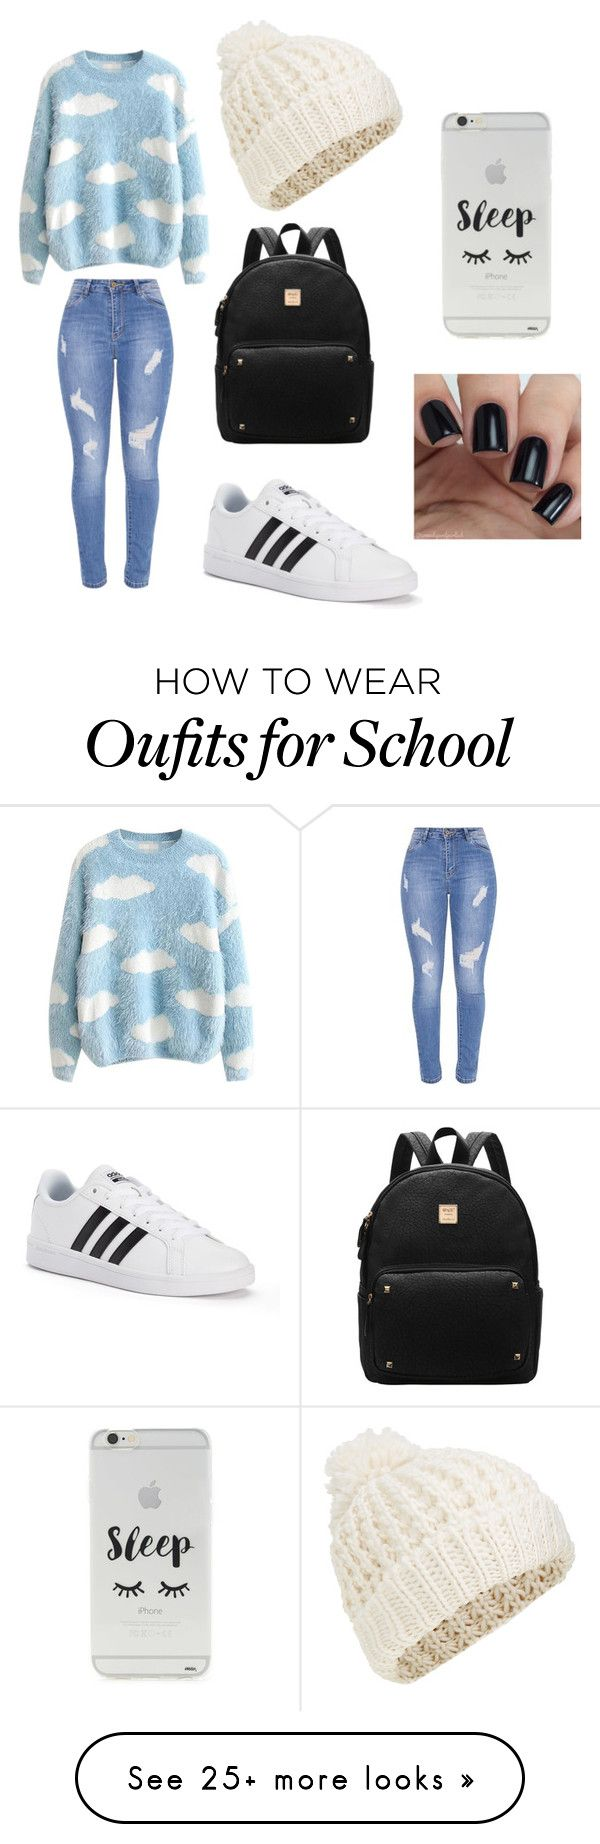 """school"" by tumblerrr on Polyvore featuring adidas, Forever 21 and Accessorize"